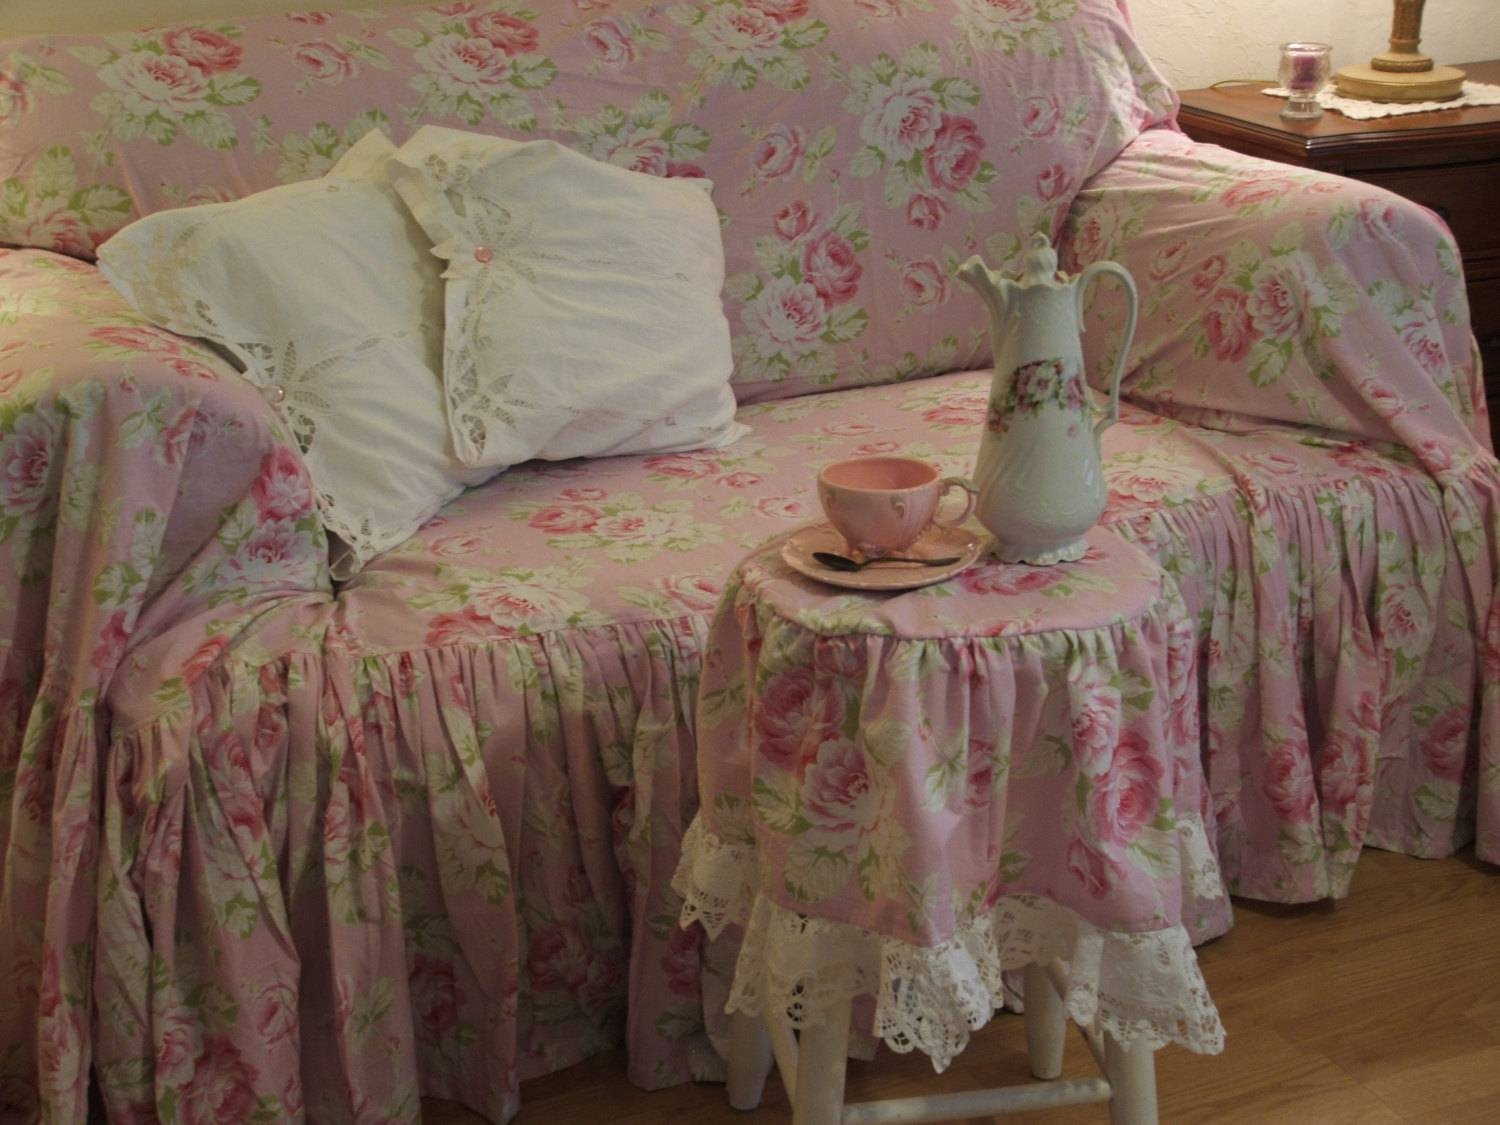 Shabby Chic Sofa Bed - Fjellkjeden pertaining to Shabby Chic Sofas Covers (Image 10 of 15)